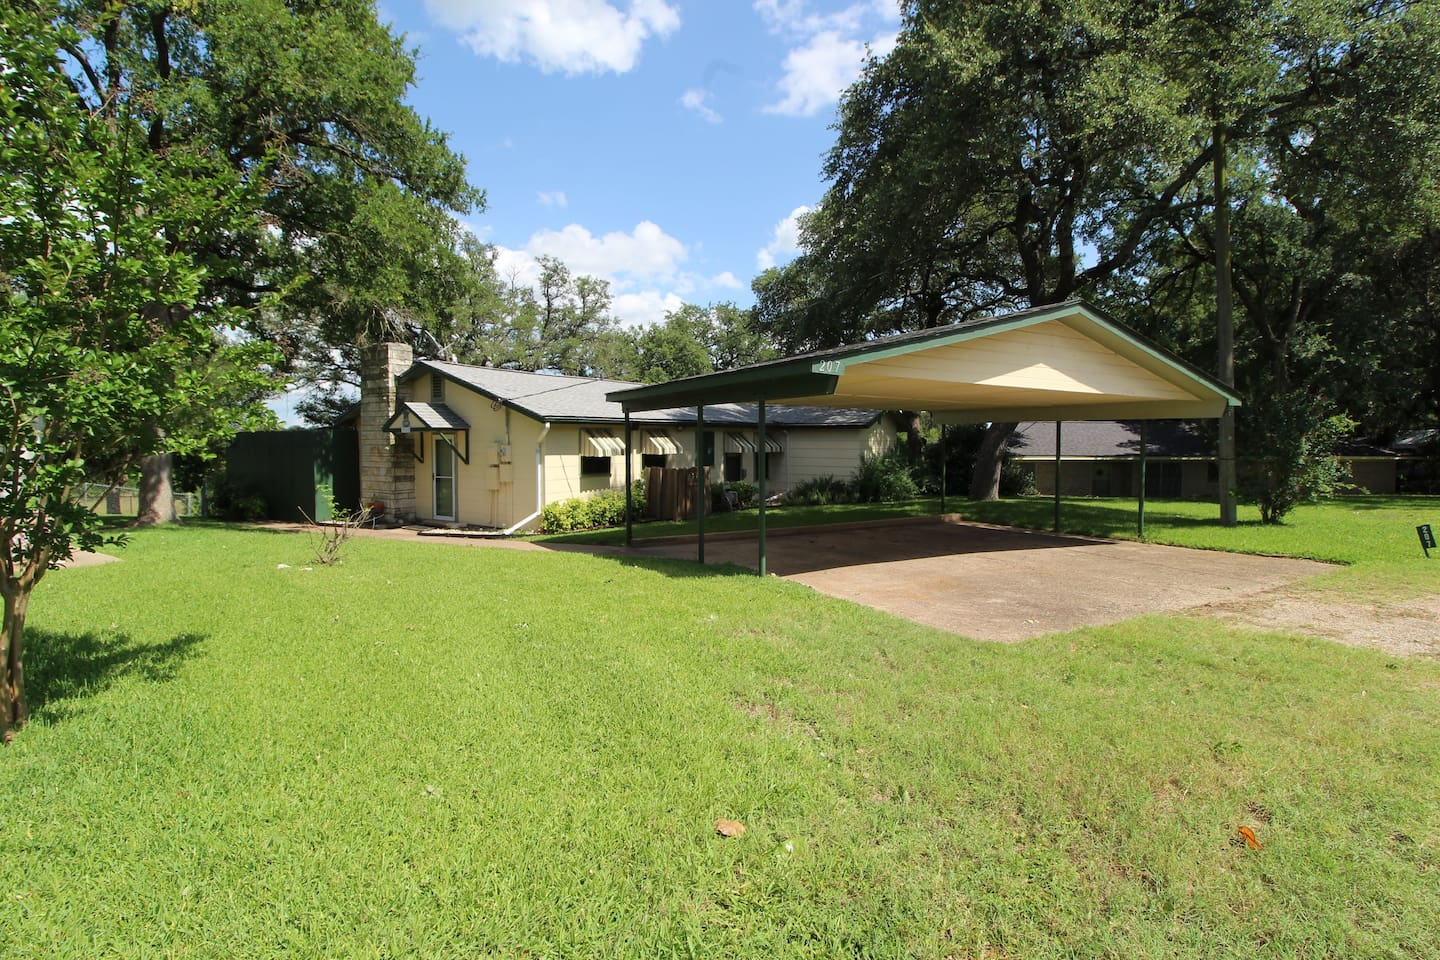 Edgewater Retreat is a 3 bedroom, 2 bathroom lake house located on the southwestern shore of Lake Whitney and provides great views of the lake from the house and backyard. It has a fenced backyard and is walking distance to lake access just down the street.